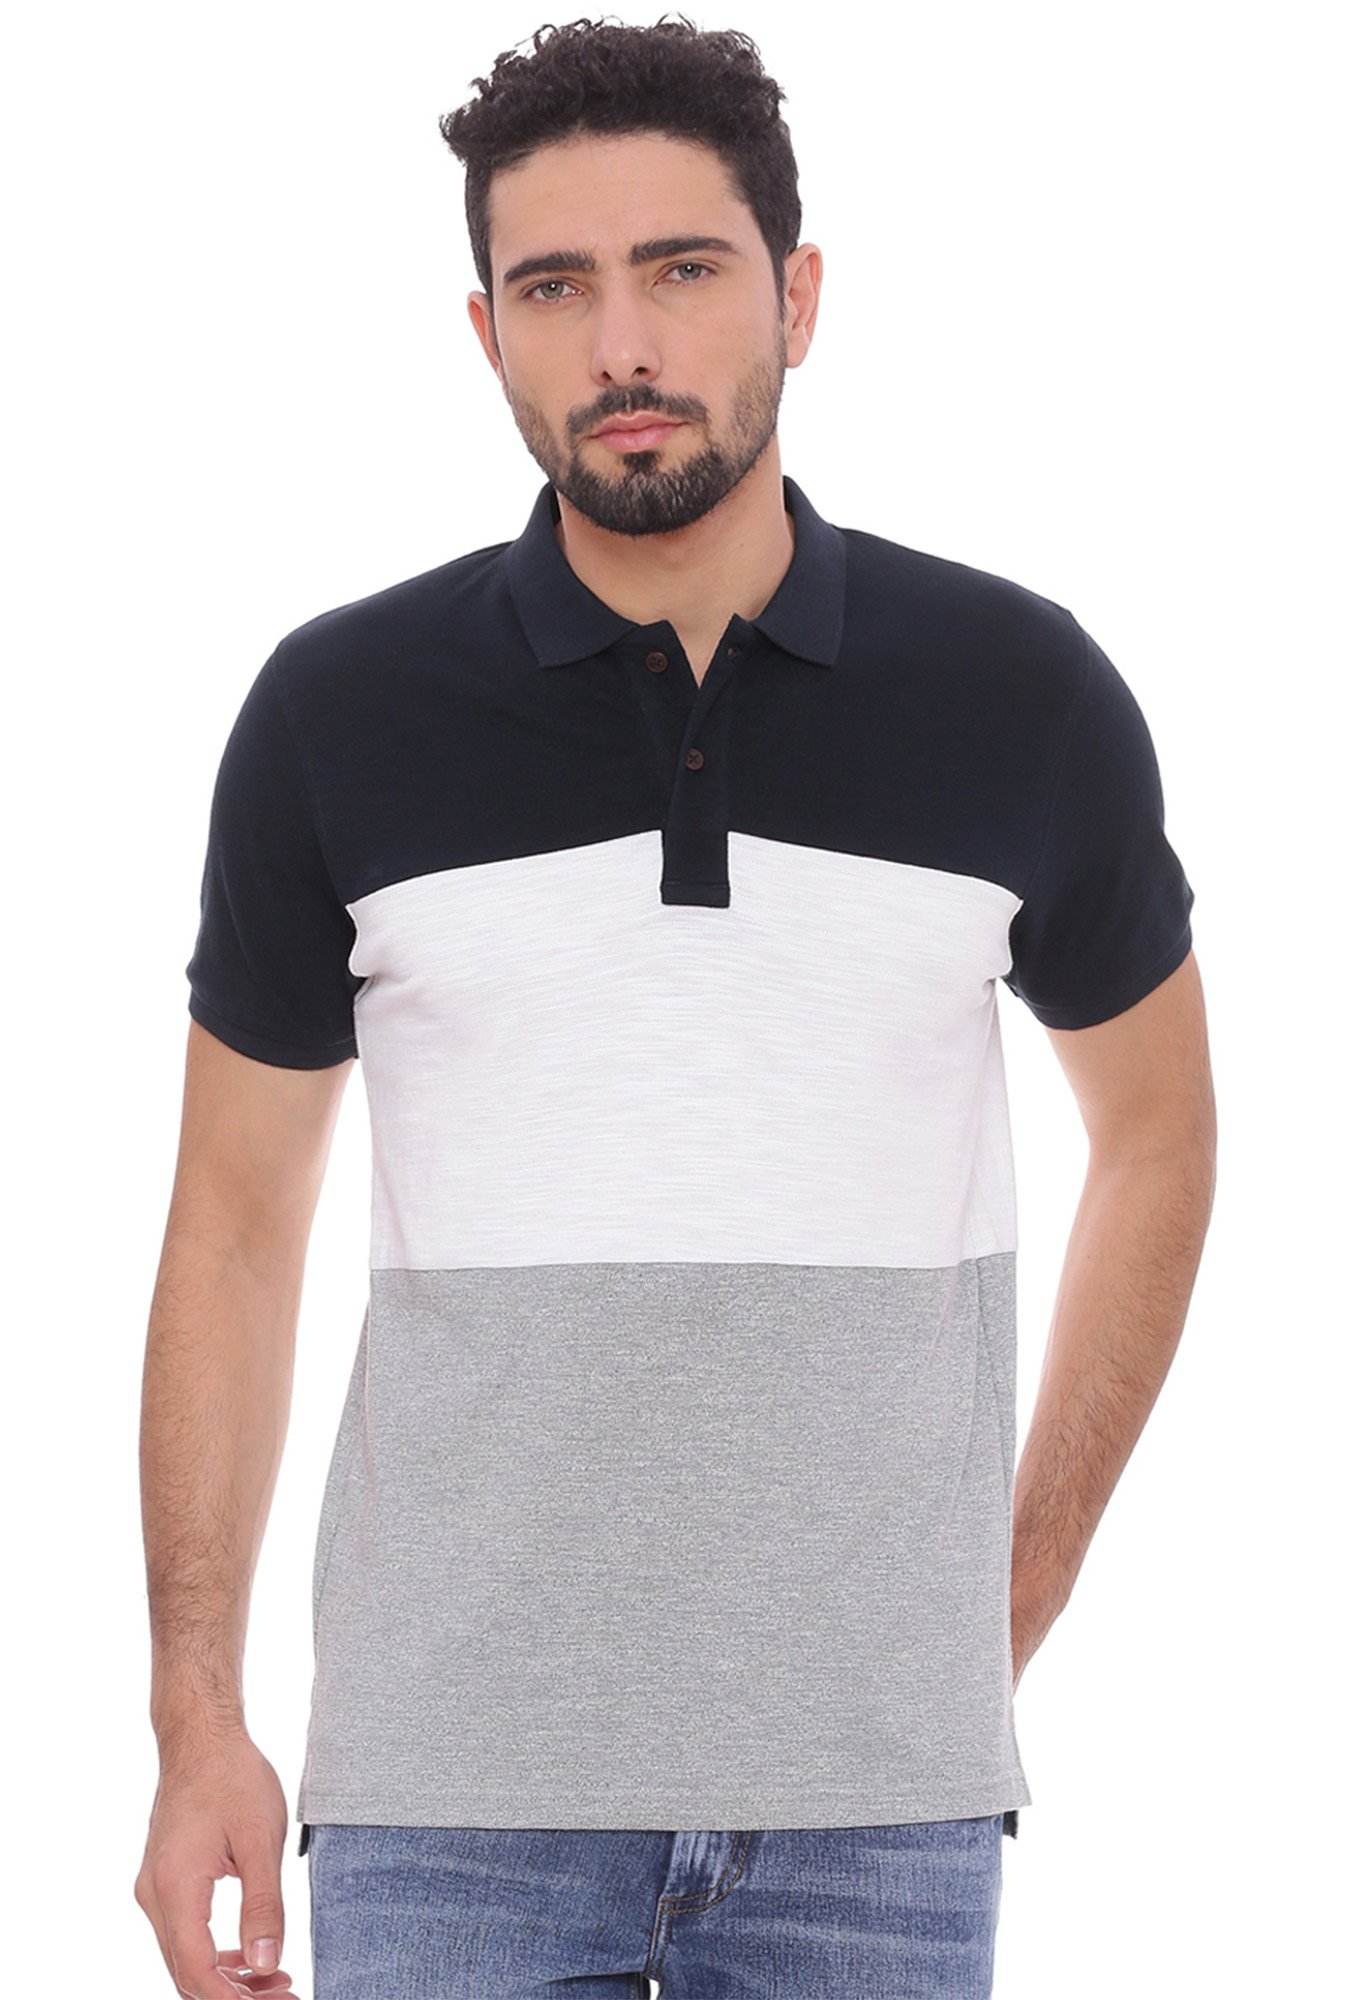 Basics Navy & White Slim Fit Polo T-Shirt